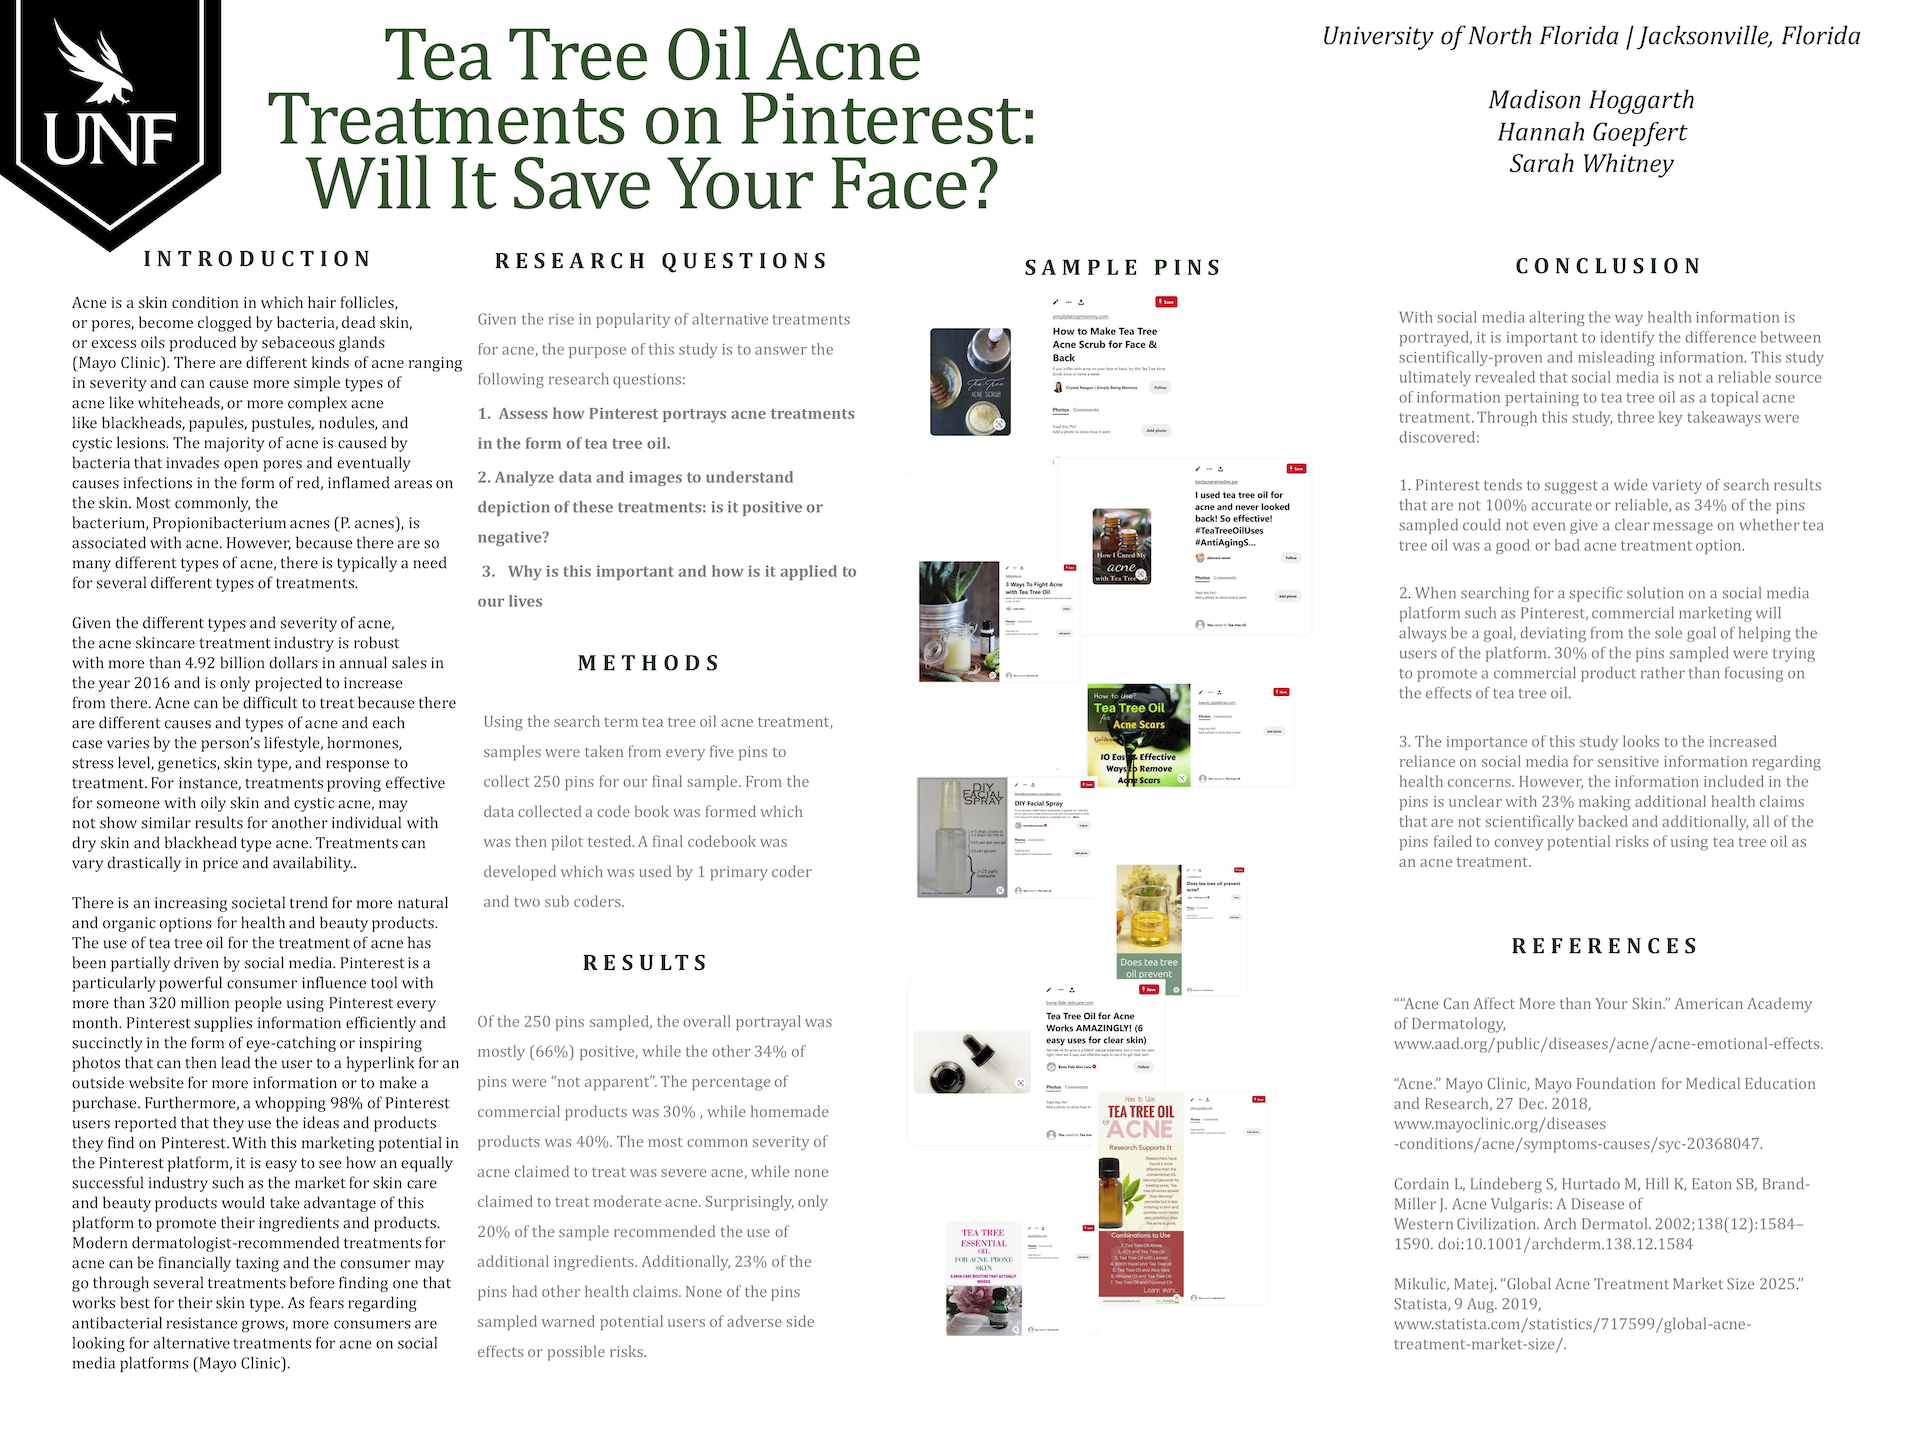 Tree Oil Acne Treatments on Pinterest: Will It Save Your Face? poster